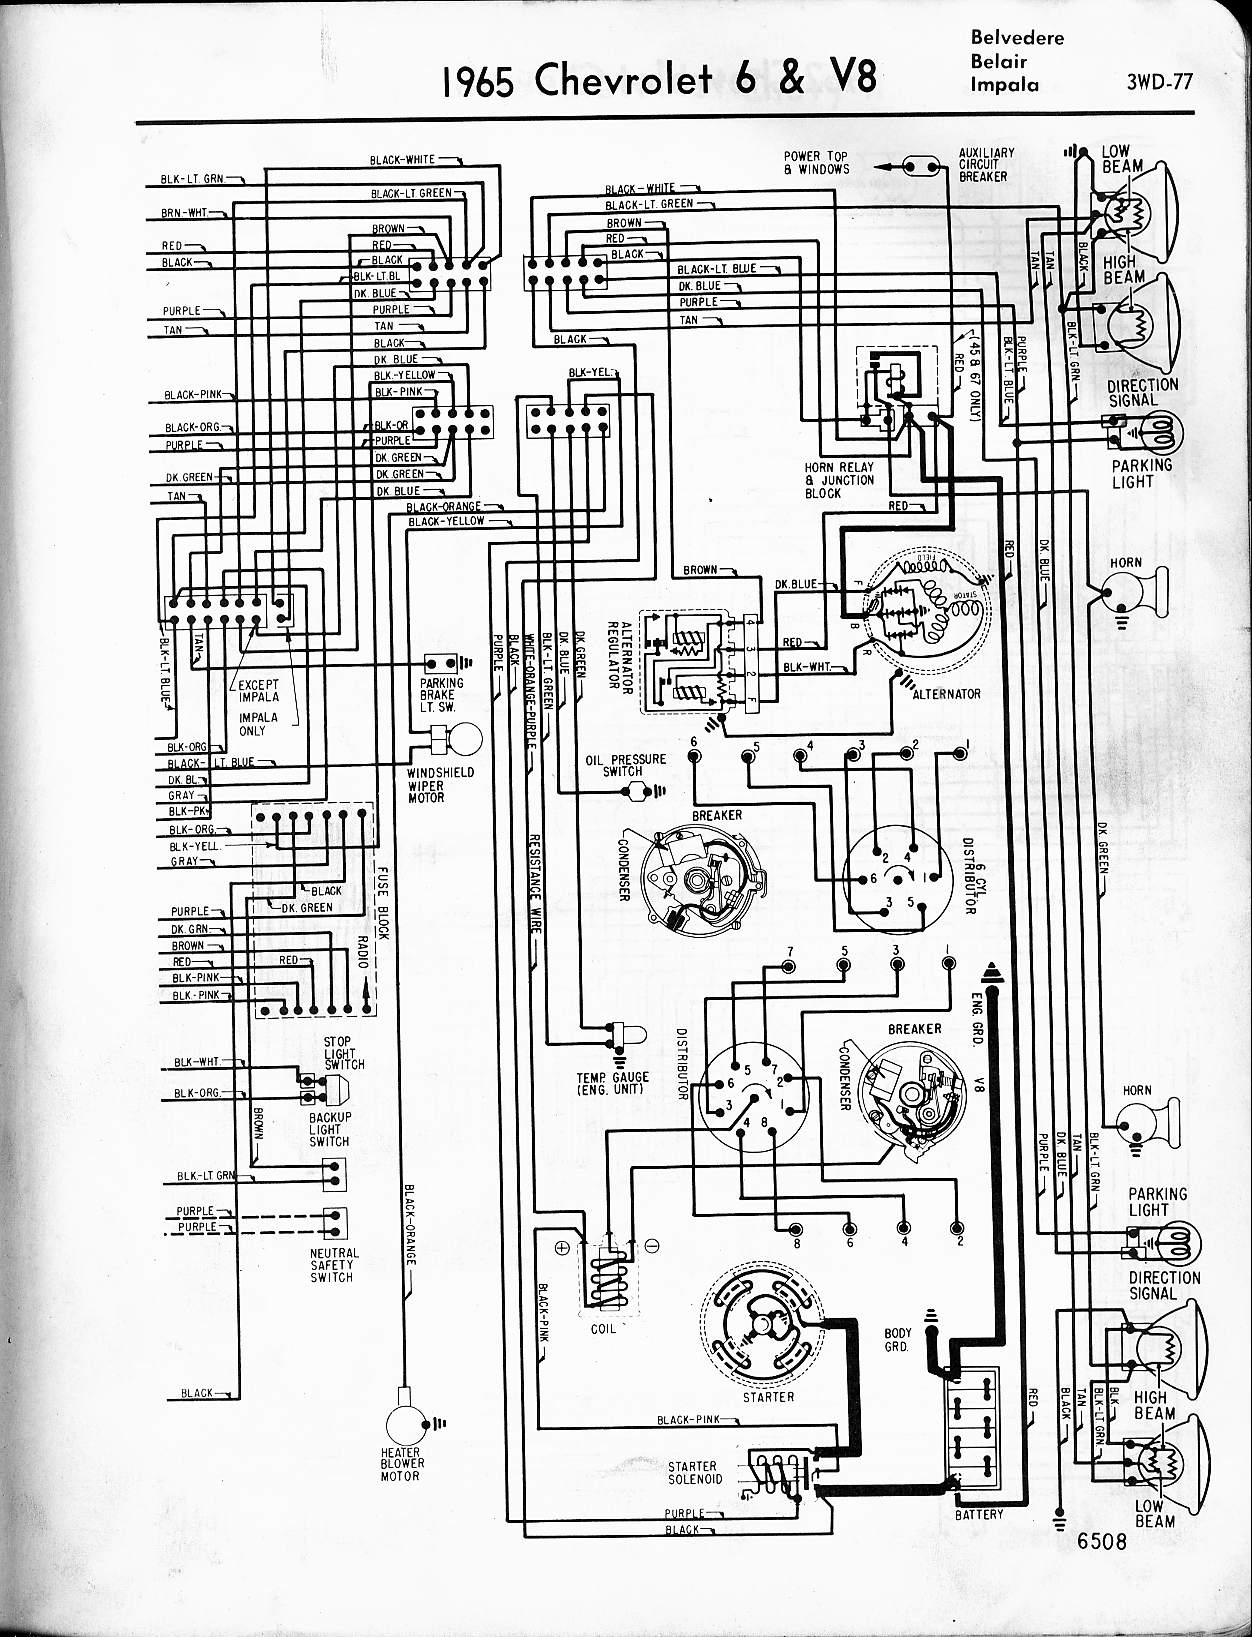 MWireChev65_3WD 077 chevy diagrams 1970 chevelle wiring schematic at panicattacktreatment.co